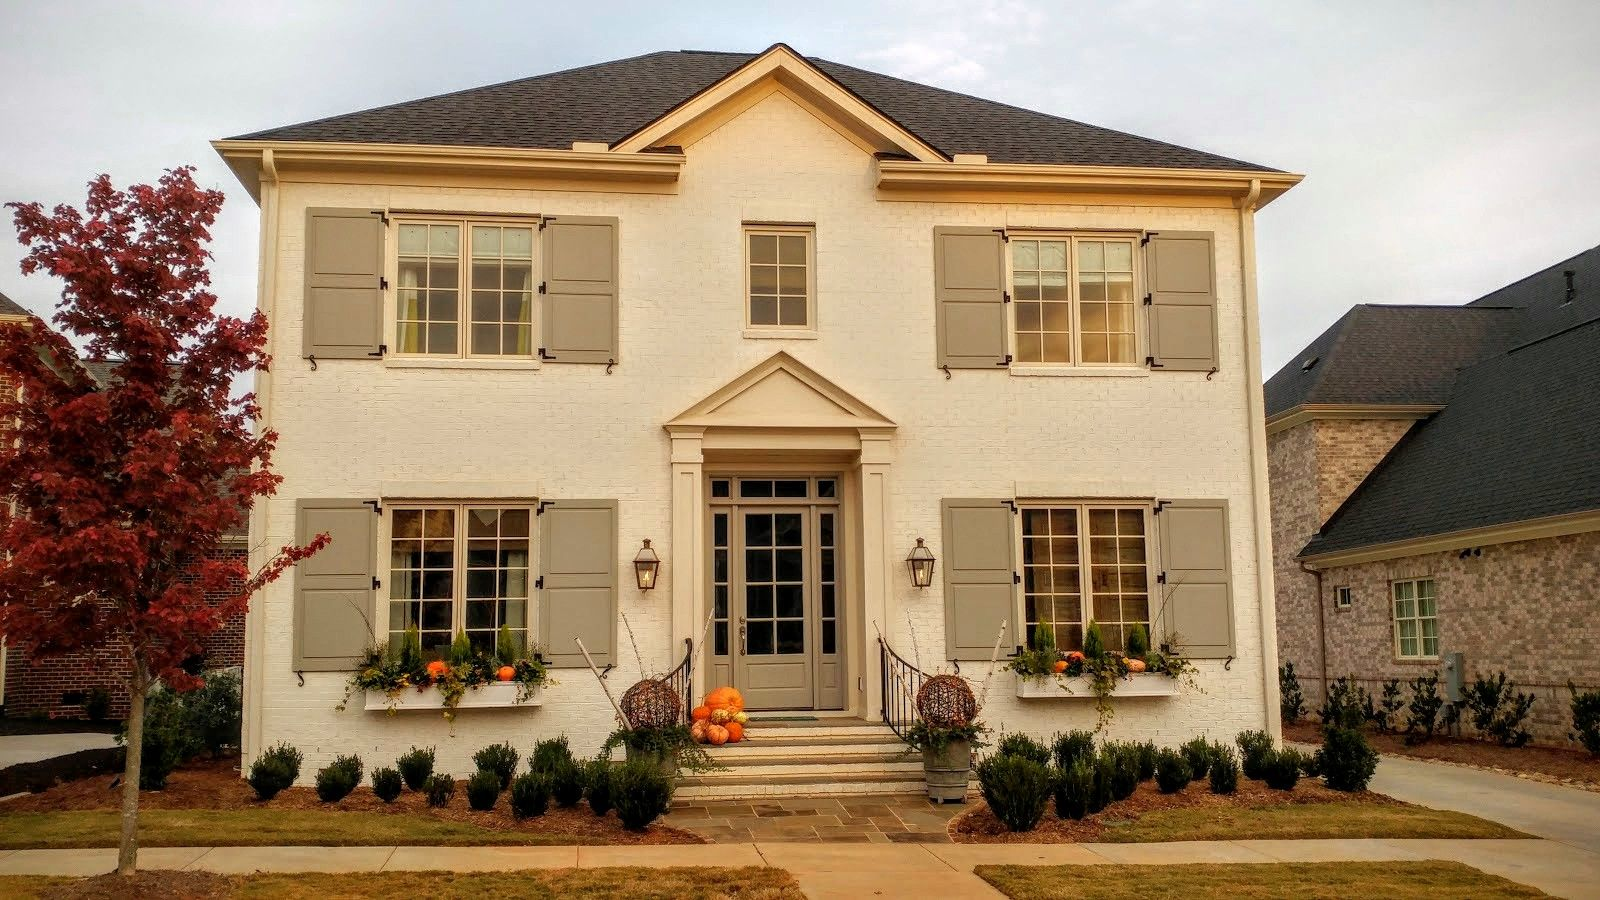 Custom Painted Exterior Shutters To Match Painted Front